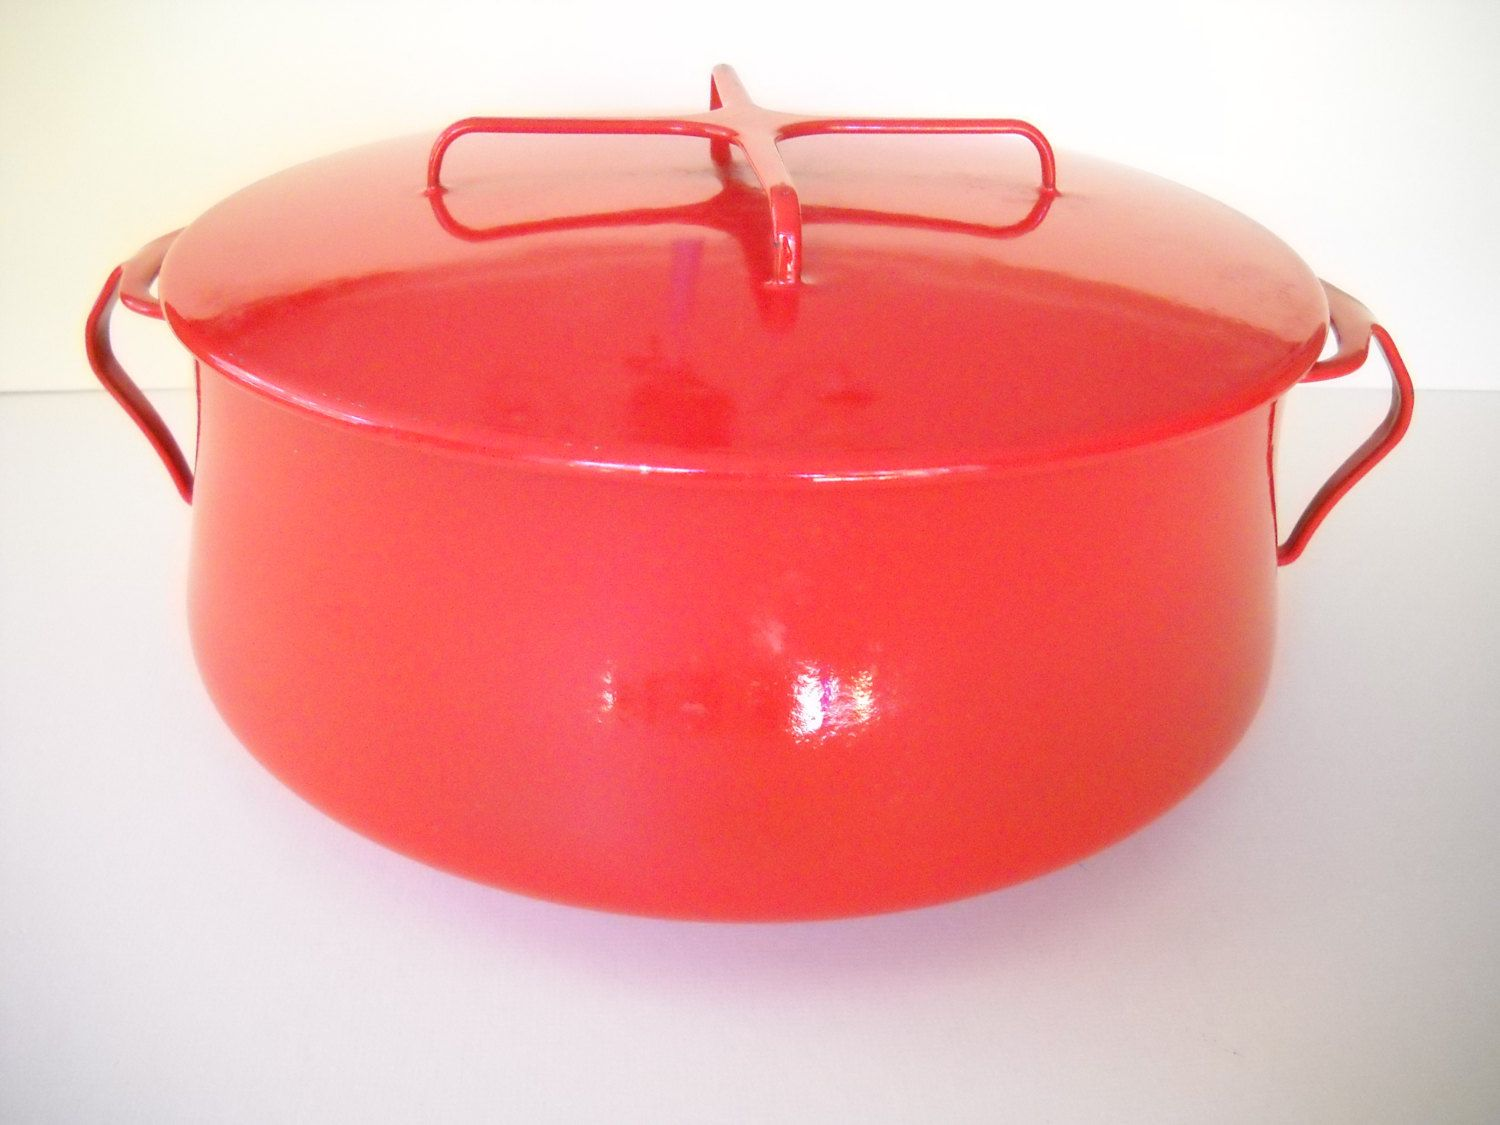 Dansk Large 12 Red Enamel Stock Pot Dutch Oven 8 Qt By Modernaire On Etsy Vintage Cookware Dansk Enamel Cookware